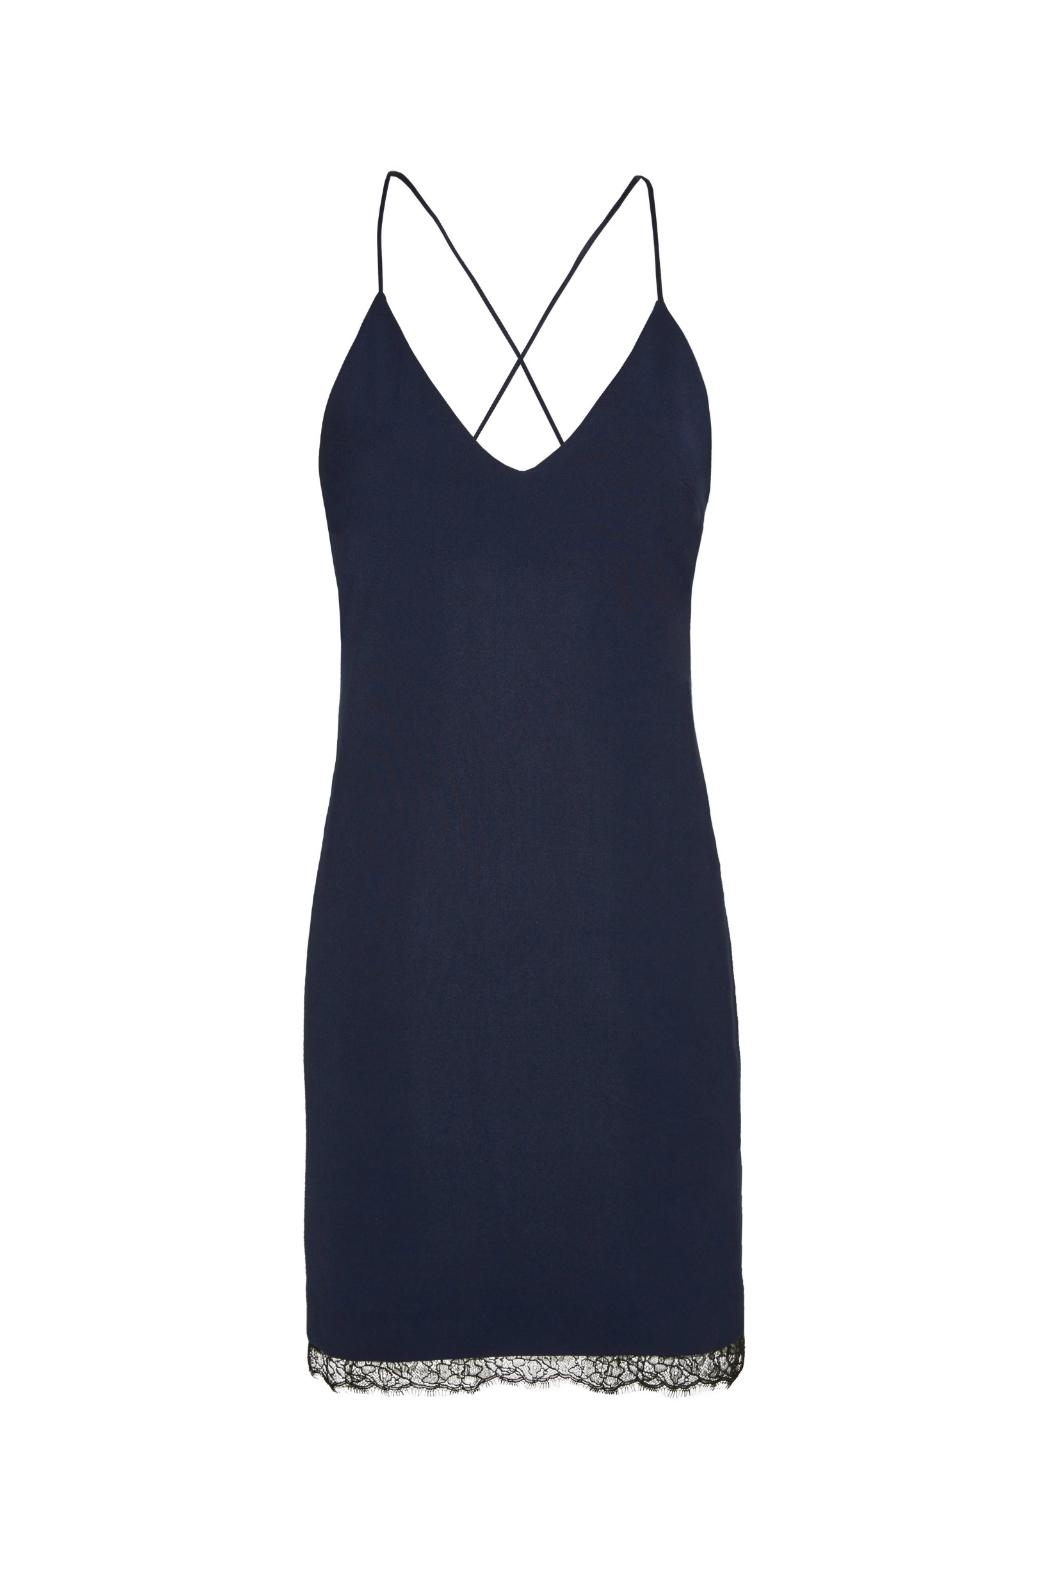 Alice + Olivia Navy Sleeveless Sheath Dress - Side Cropped Image